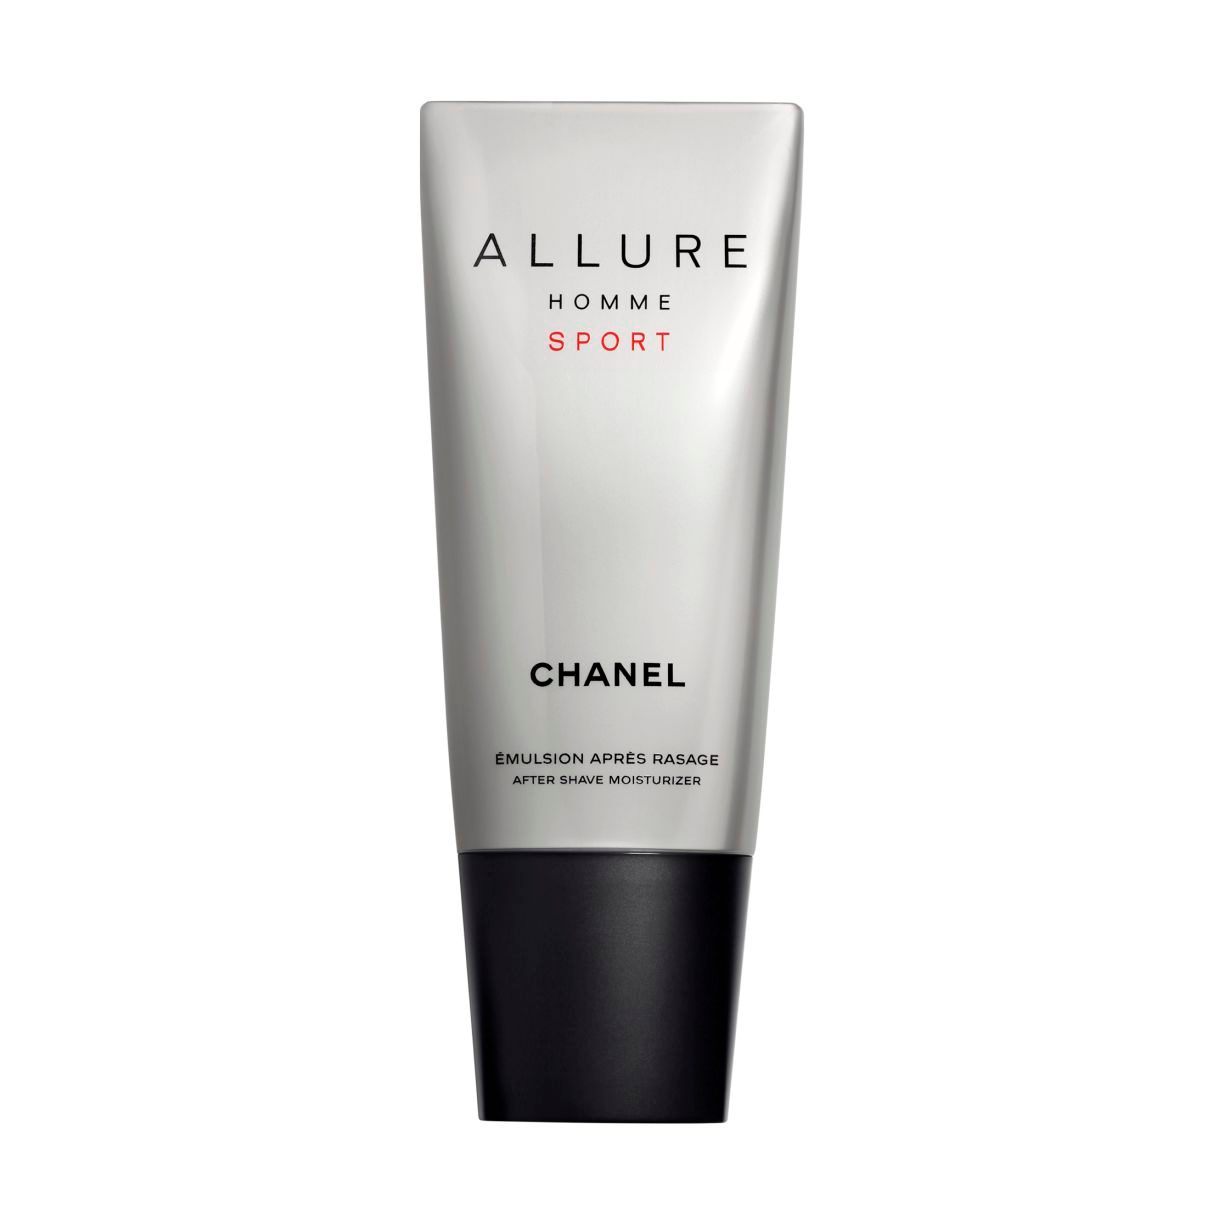 ALLURE HOMME SPORT AFTER SHAVE MOISTURISER 100ml